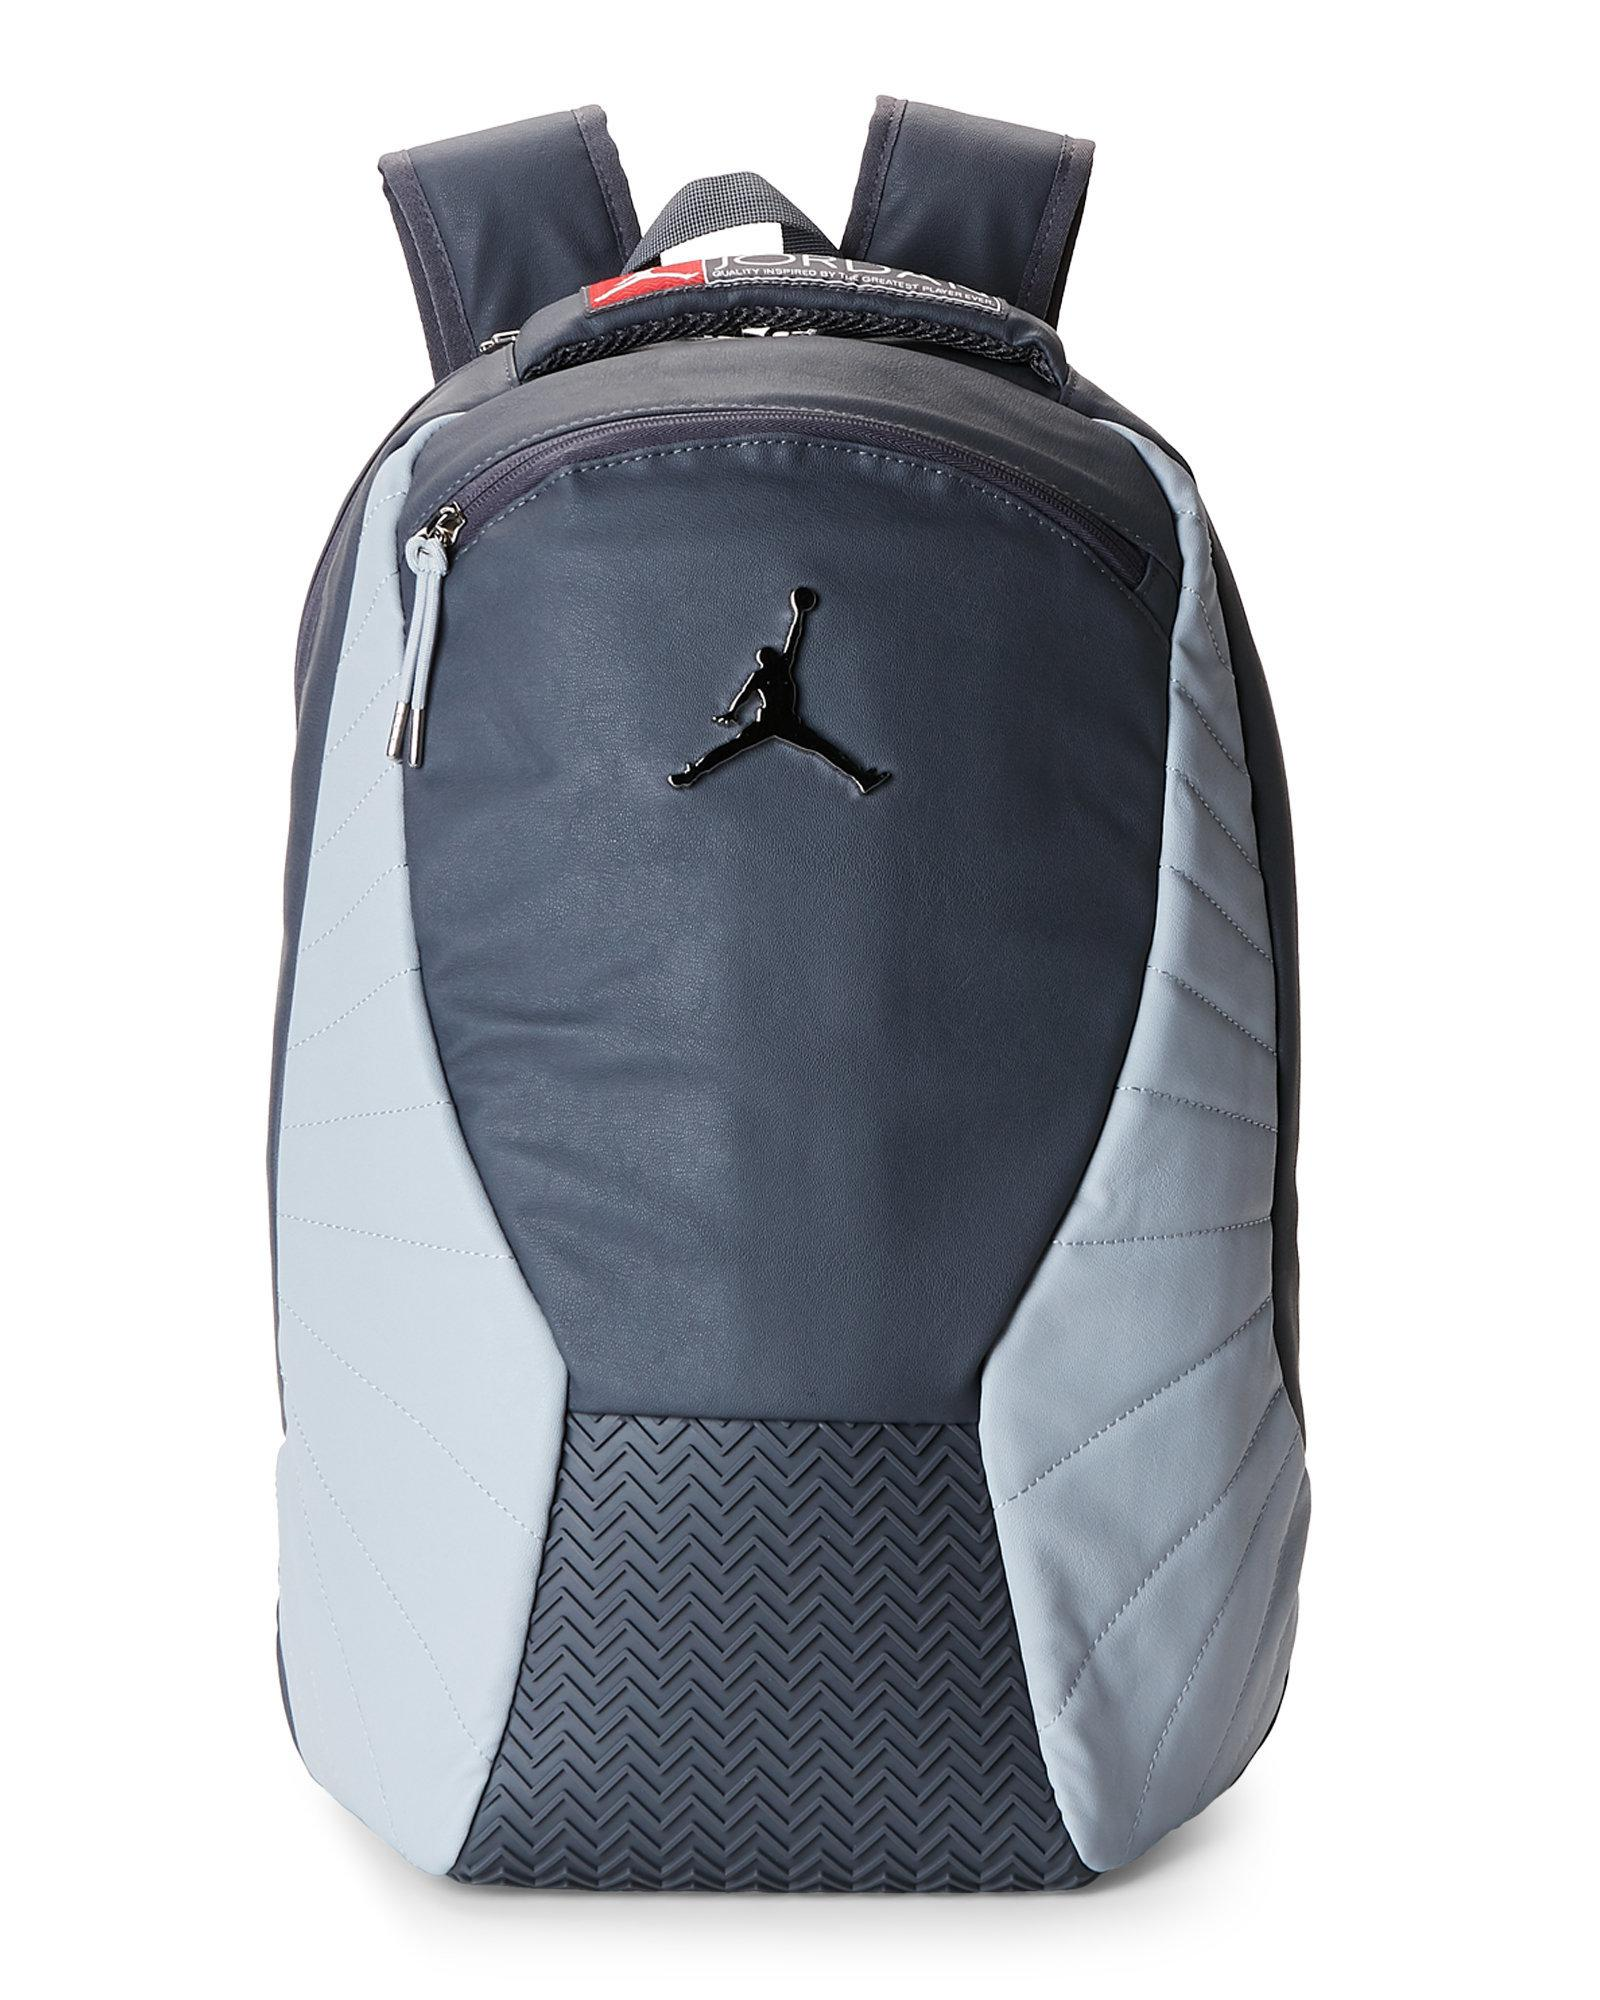 23e074c9a86e Lyst - Nike Dark Grey Jordan Retro Backpack in Gray for Men